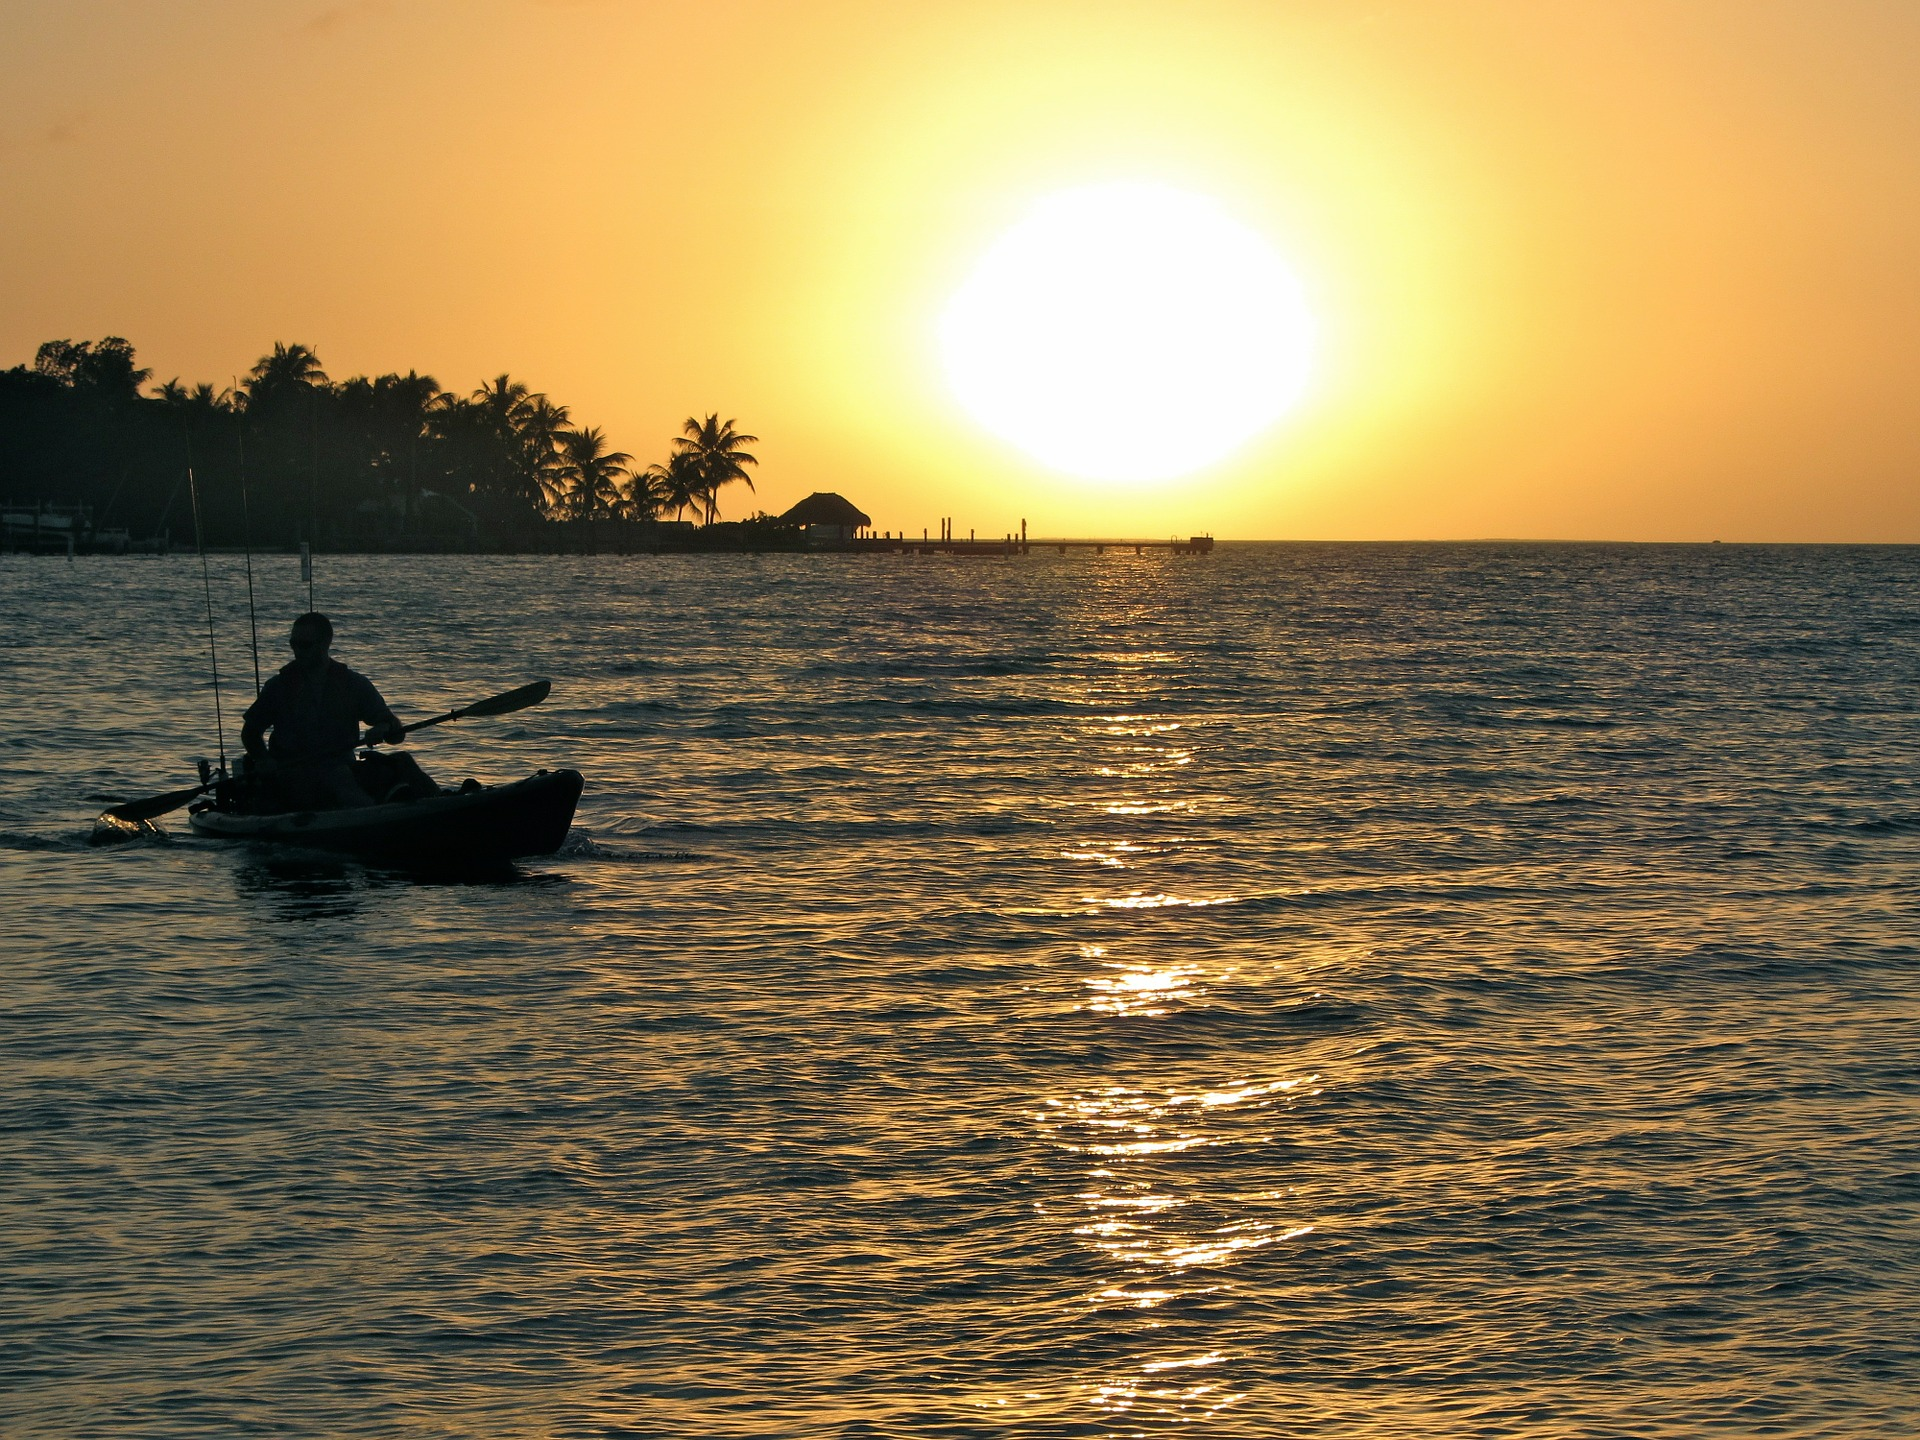 A kayaker paddles across the ocean during sunset.